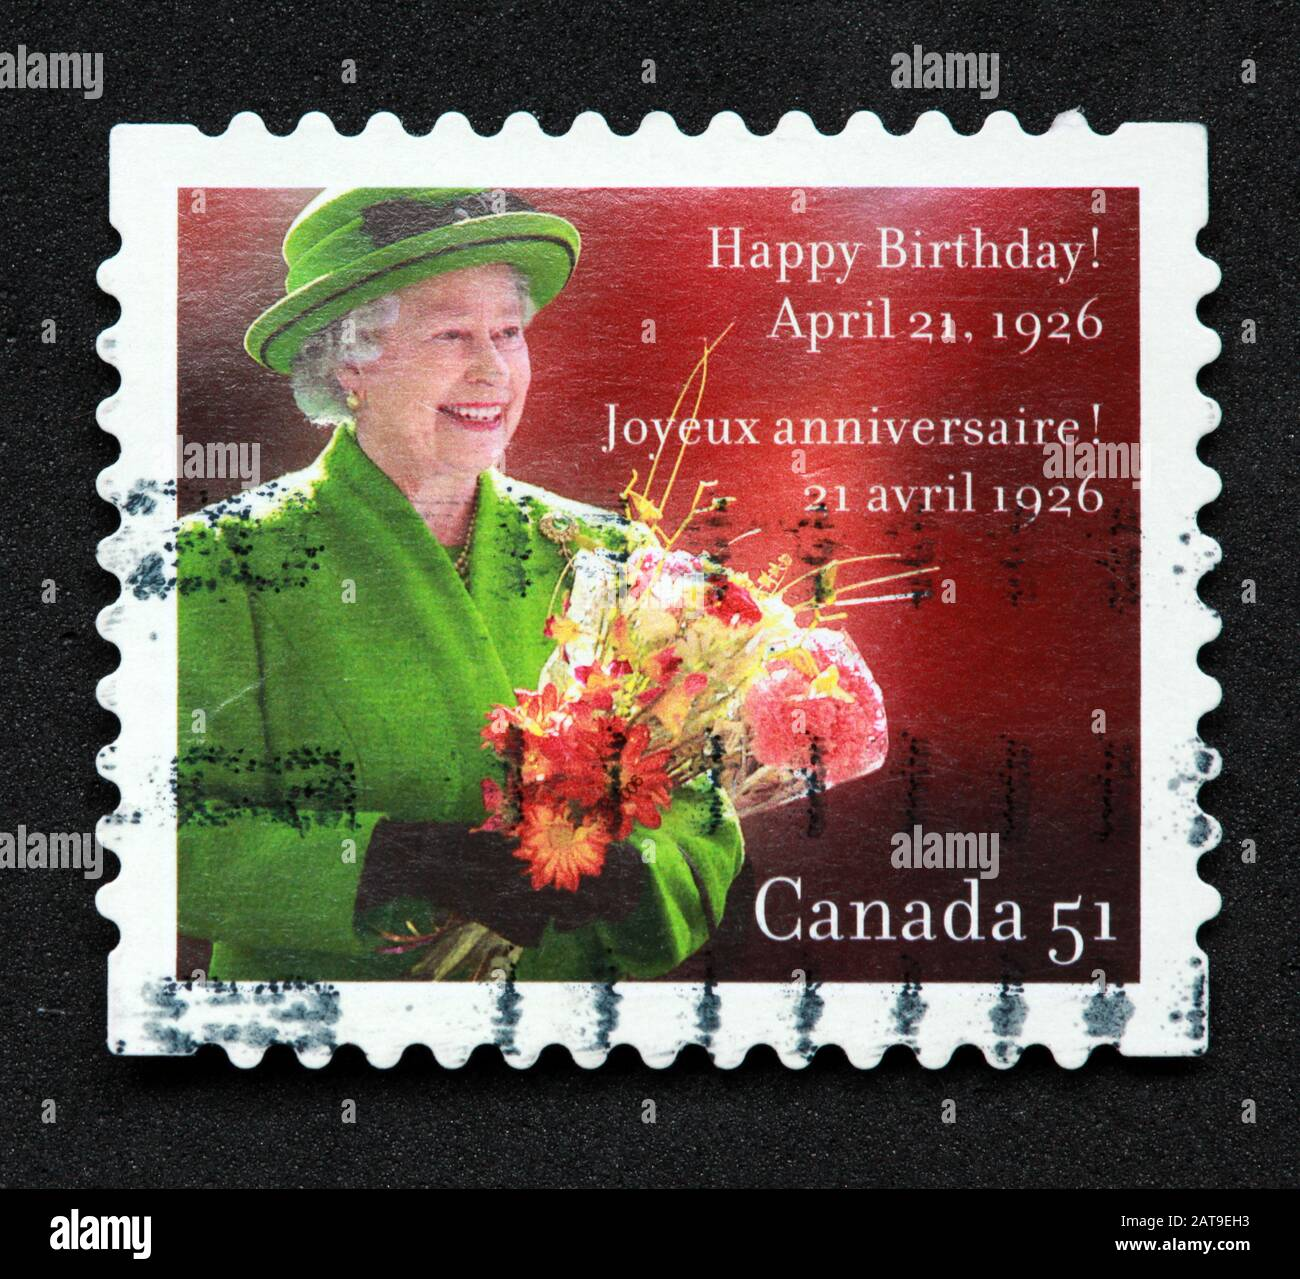 Canadian Stamp, Canada Stamp, Canada Post,used stamp, Canada 51, Happy Birthday Queen Elizabeth, April 21 1926, Joyeux anniversaire Stock Photo